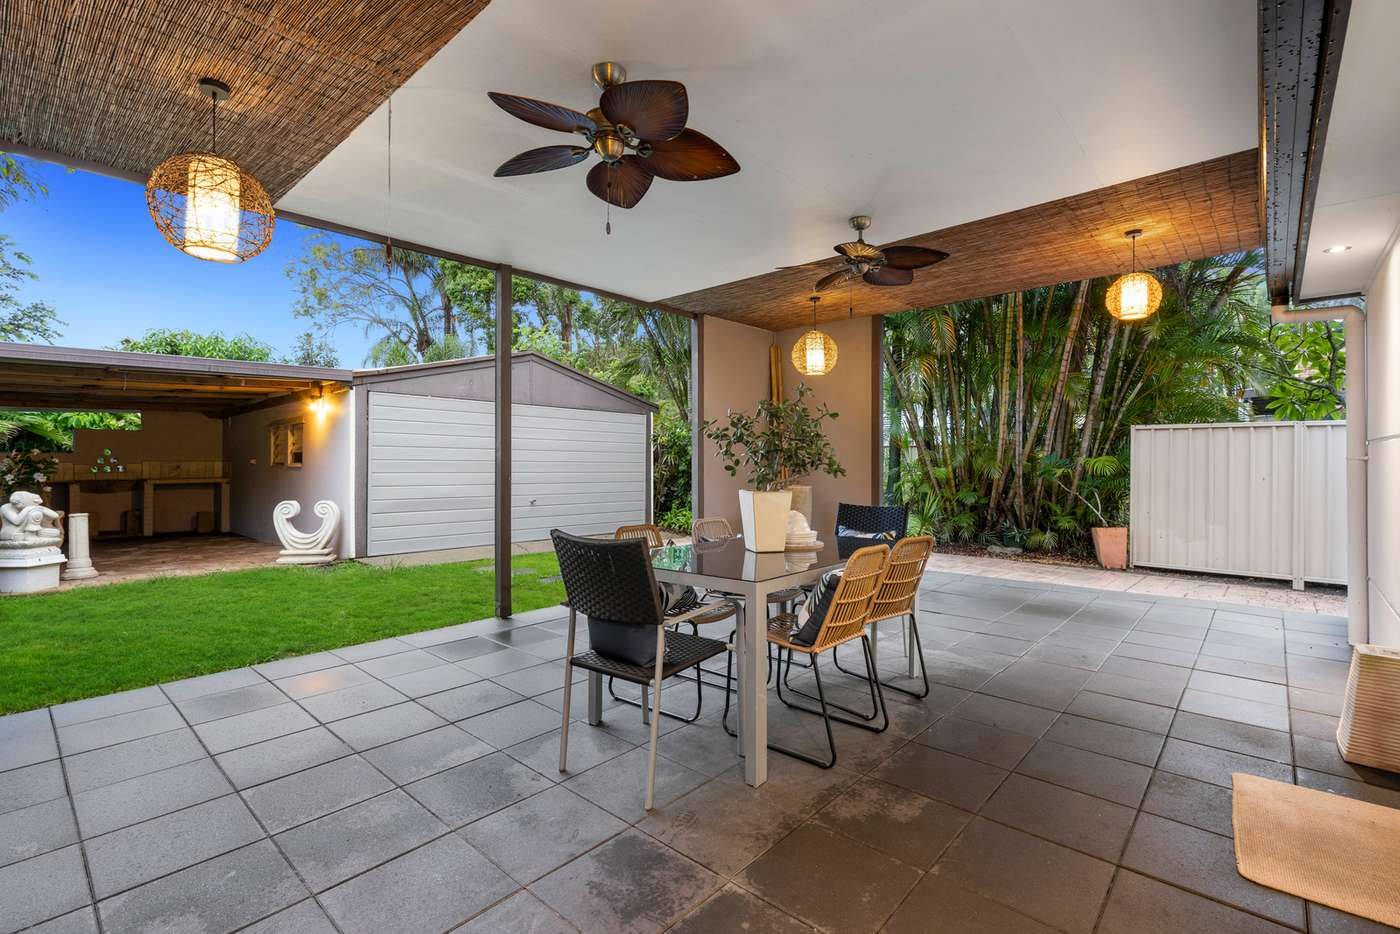 Main view of Homely house listing, 68 Manus Avenue, Palm Beach QLD 4221